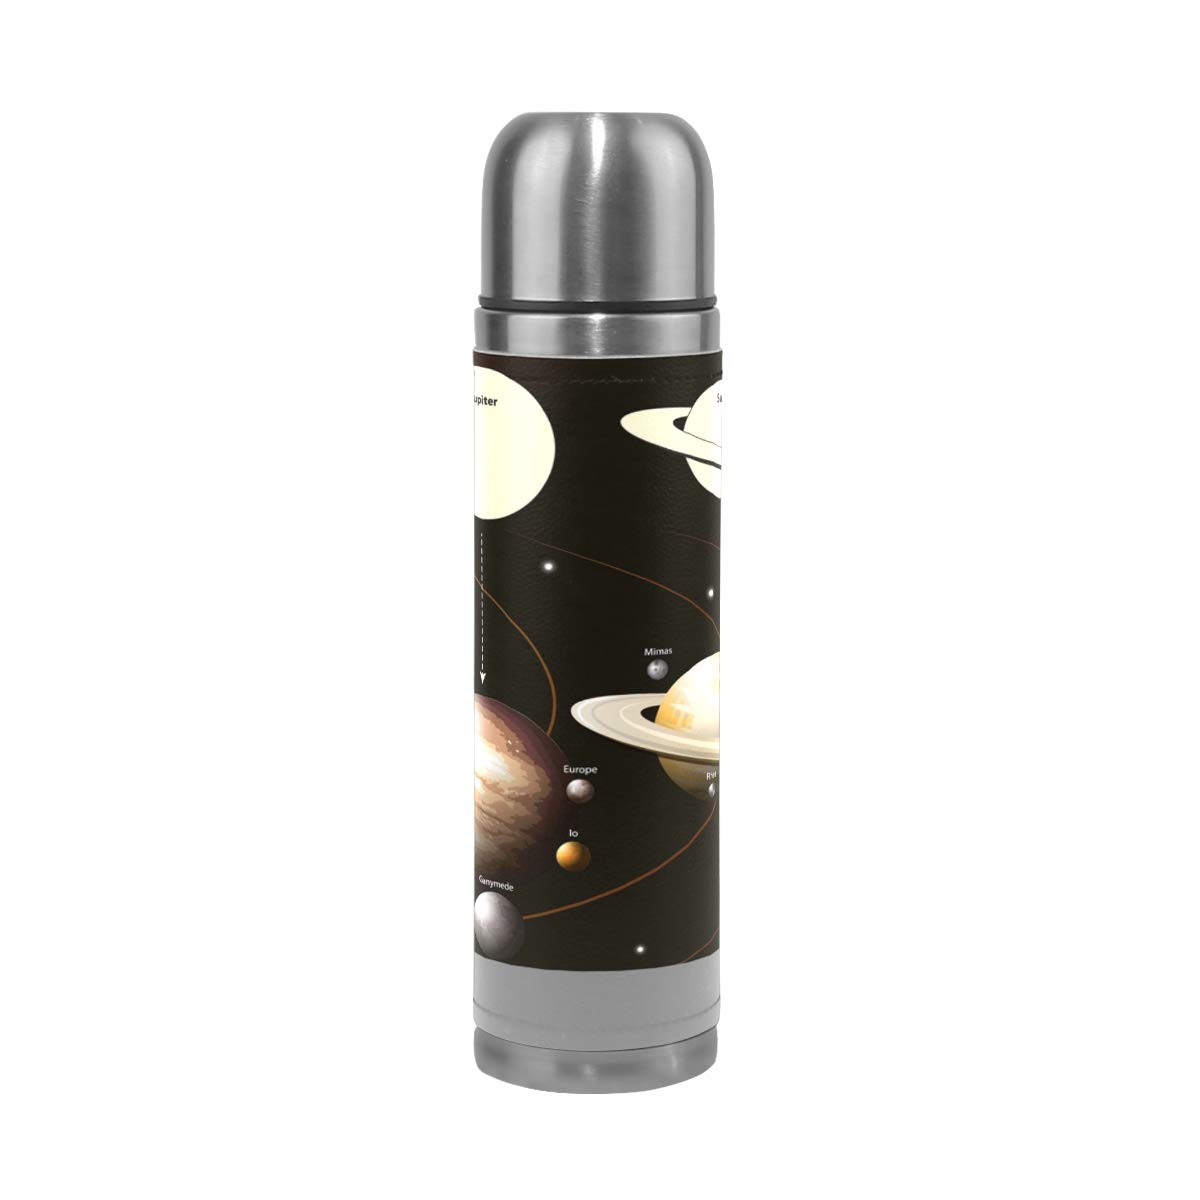 Solar System Water Bottle Stainless Steel Leak Proof Double Walled Vacuum Insulated Travel Coffee Mug Genuine Leather Cover Drink Cup 17 oz